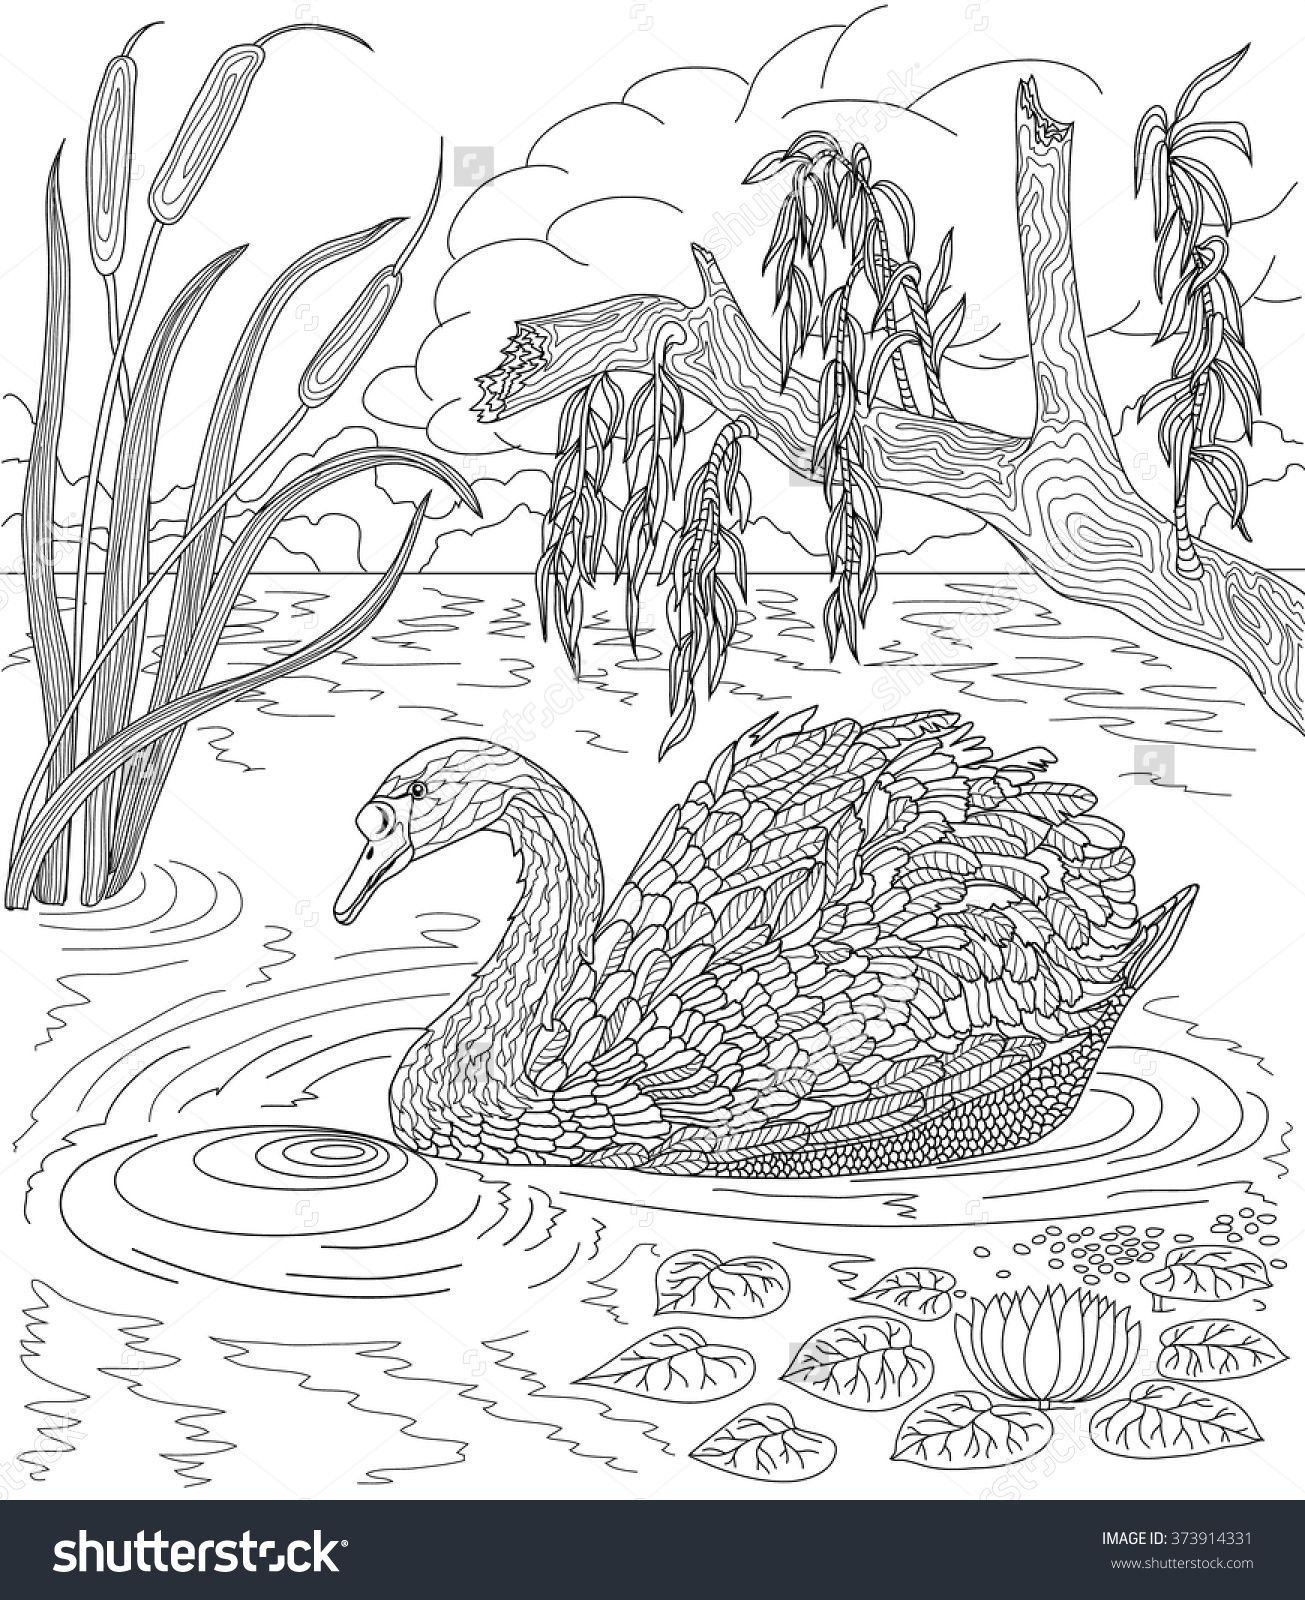 Hand Drawn Bird Swan Swimming In A Lake With Reeds And Water